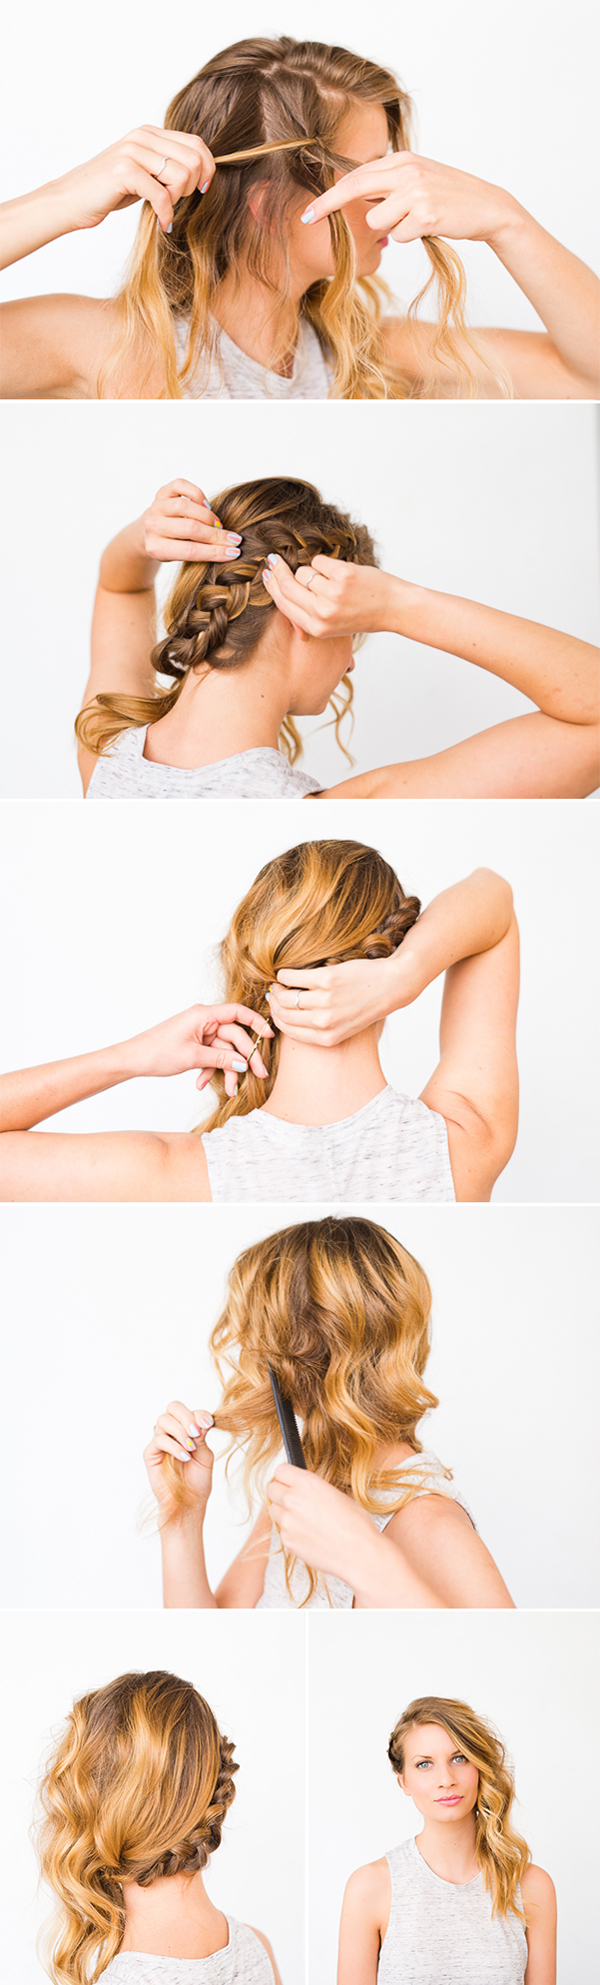 Swept Away: Diy Side Swept Braid And Wave Hair – Paper And Throughout Most Up To Date Side Swept Carousel Braided Hairstyles (View 2 of 20)